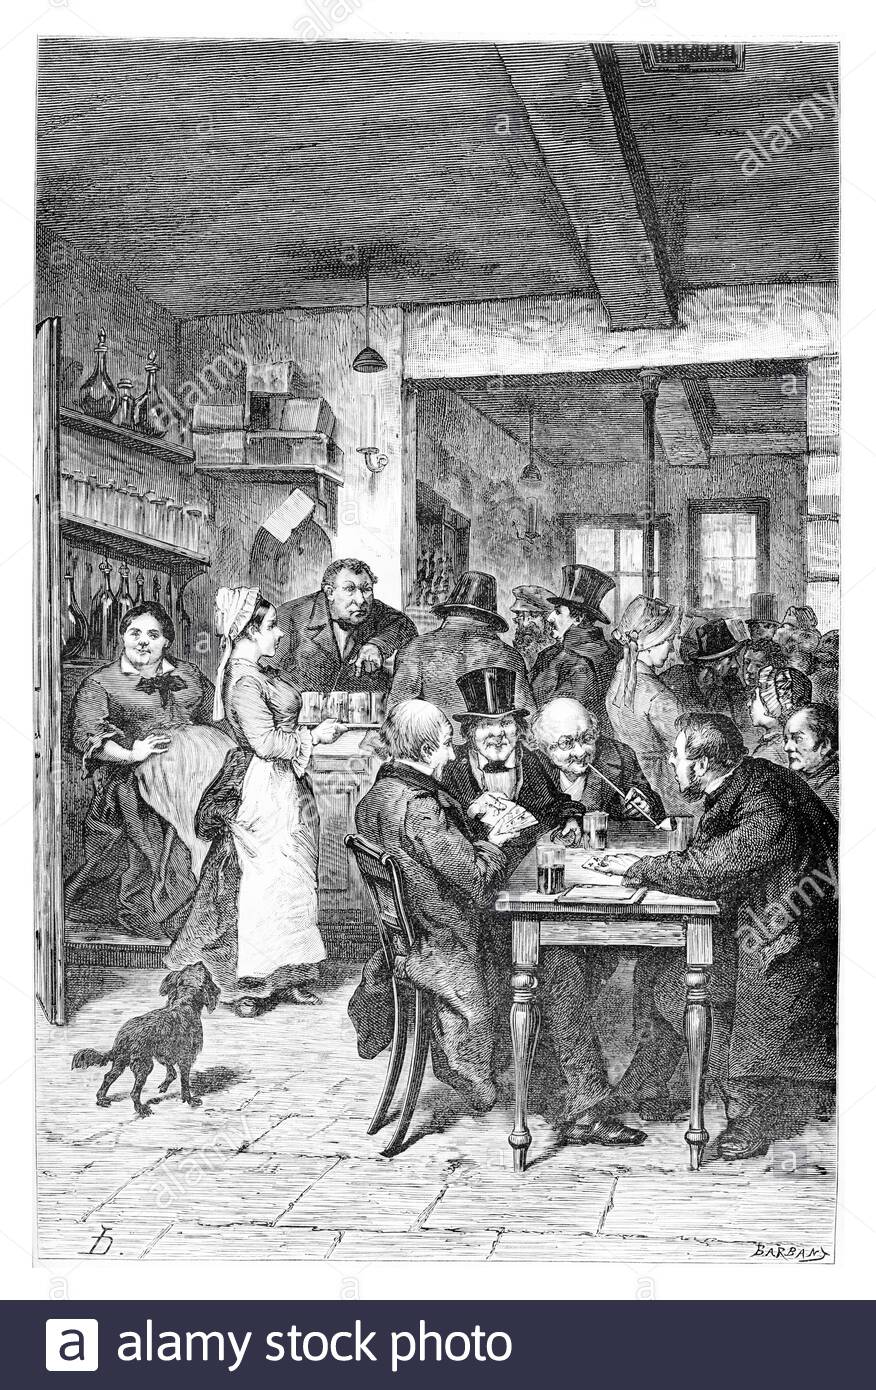 The Tavern in Brussels, Belgium, drawing by Hoese, vintage illustration. Le Tour du Monde, Travel Journal, 1881 Stock Photo